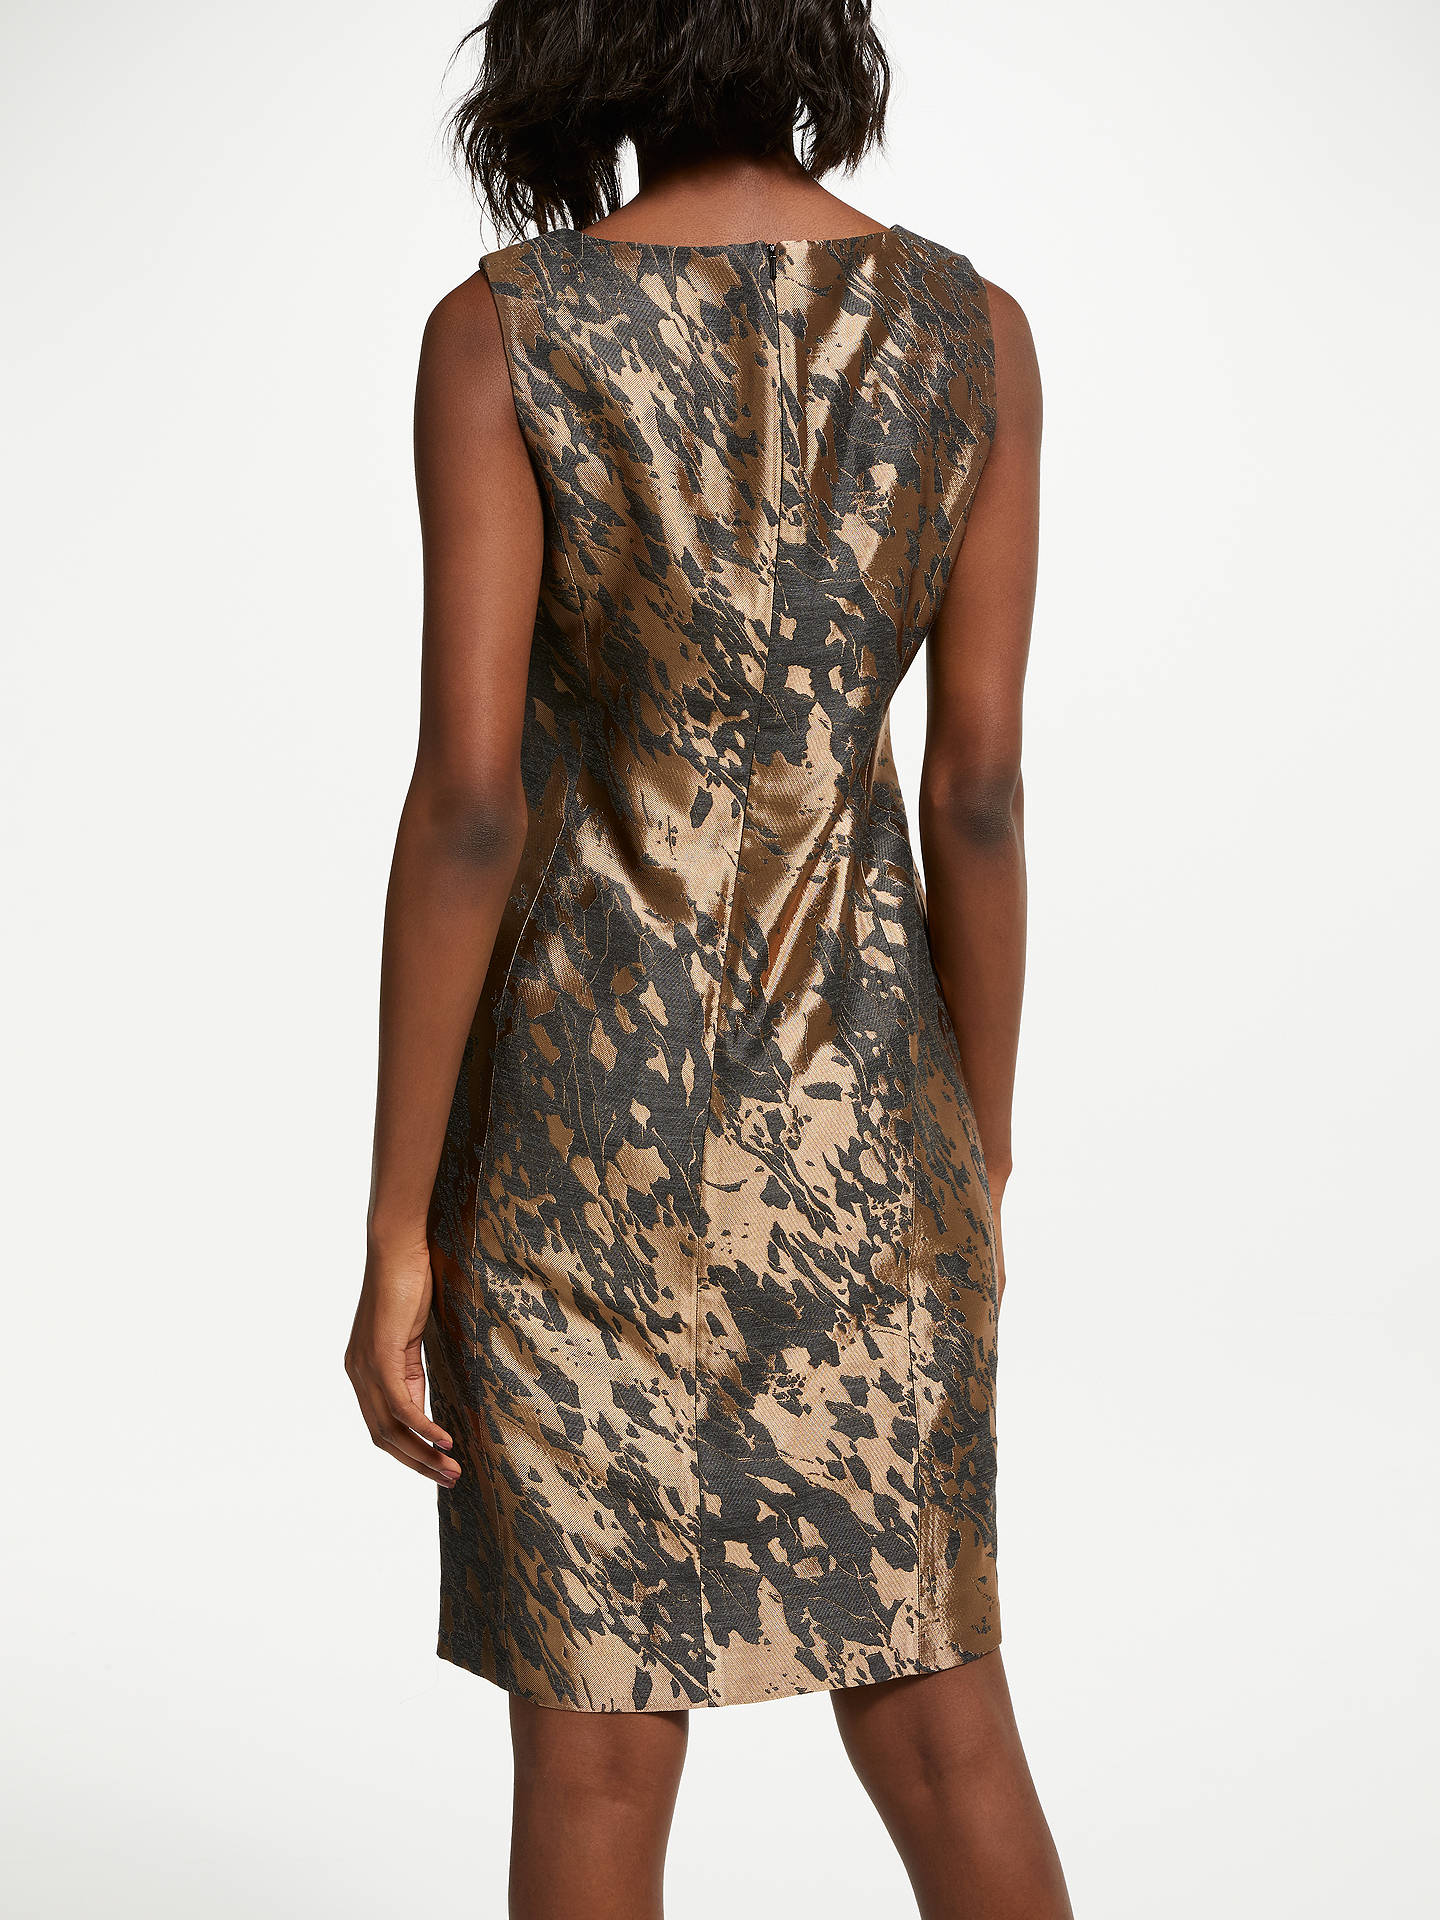 BuyBruce by Bruce Oldfield Jacquard Shift Dress, Bronze/Grey, 8 Online at johnlewis.com